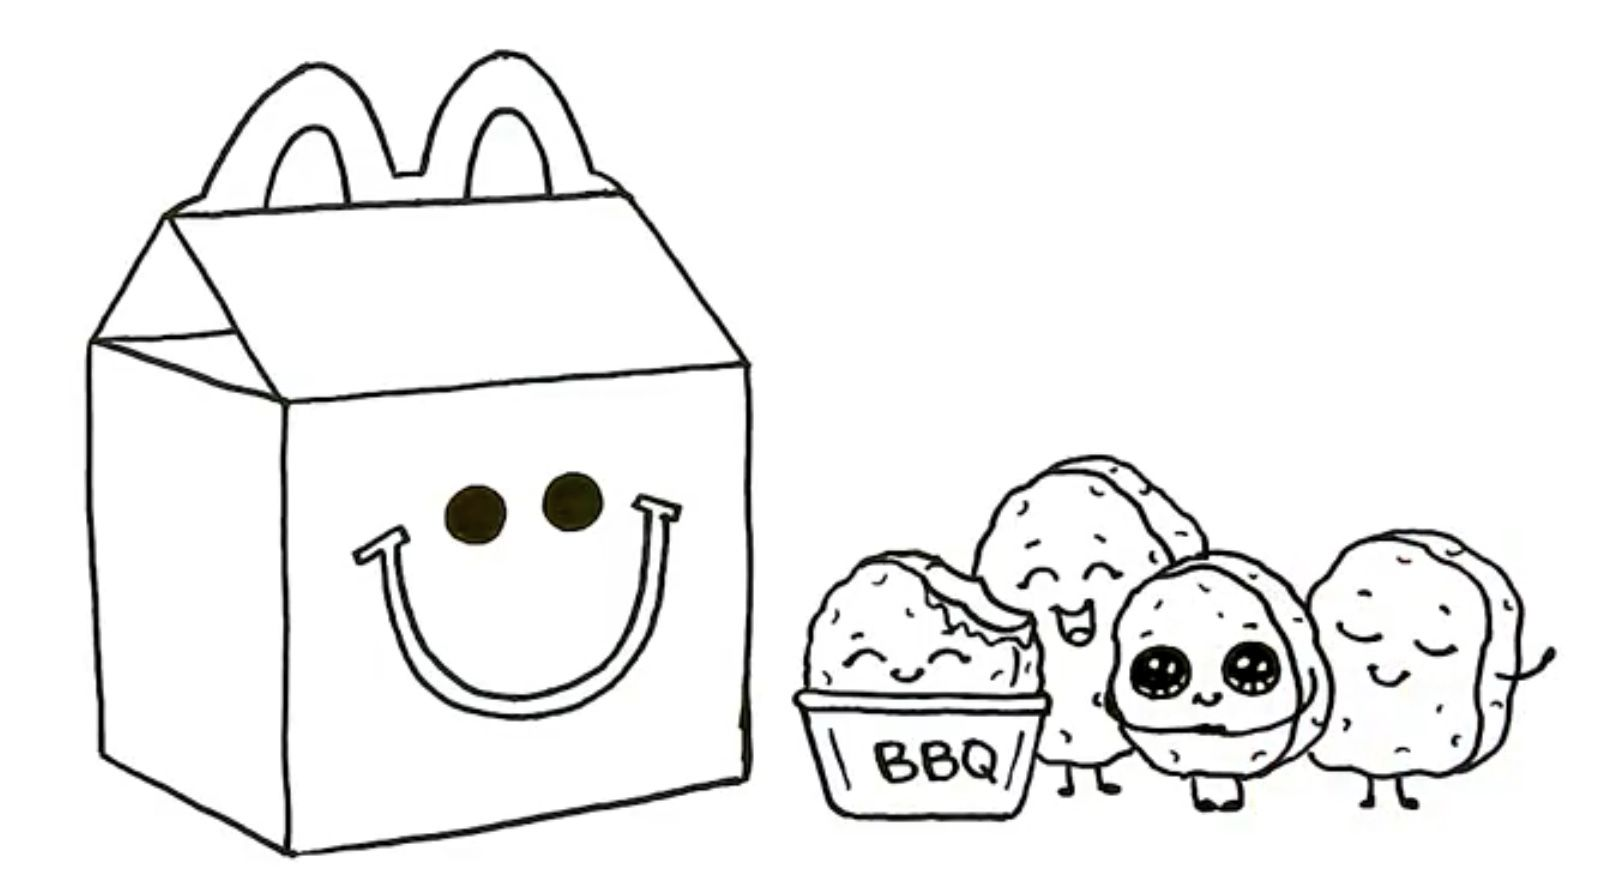 Draw So Cute Mc Donald S Happy Meal Happy Meal Mcdonalds Cute Food Happy Meal